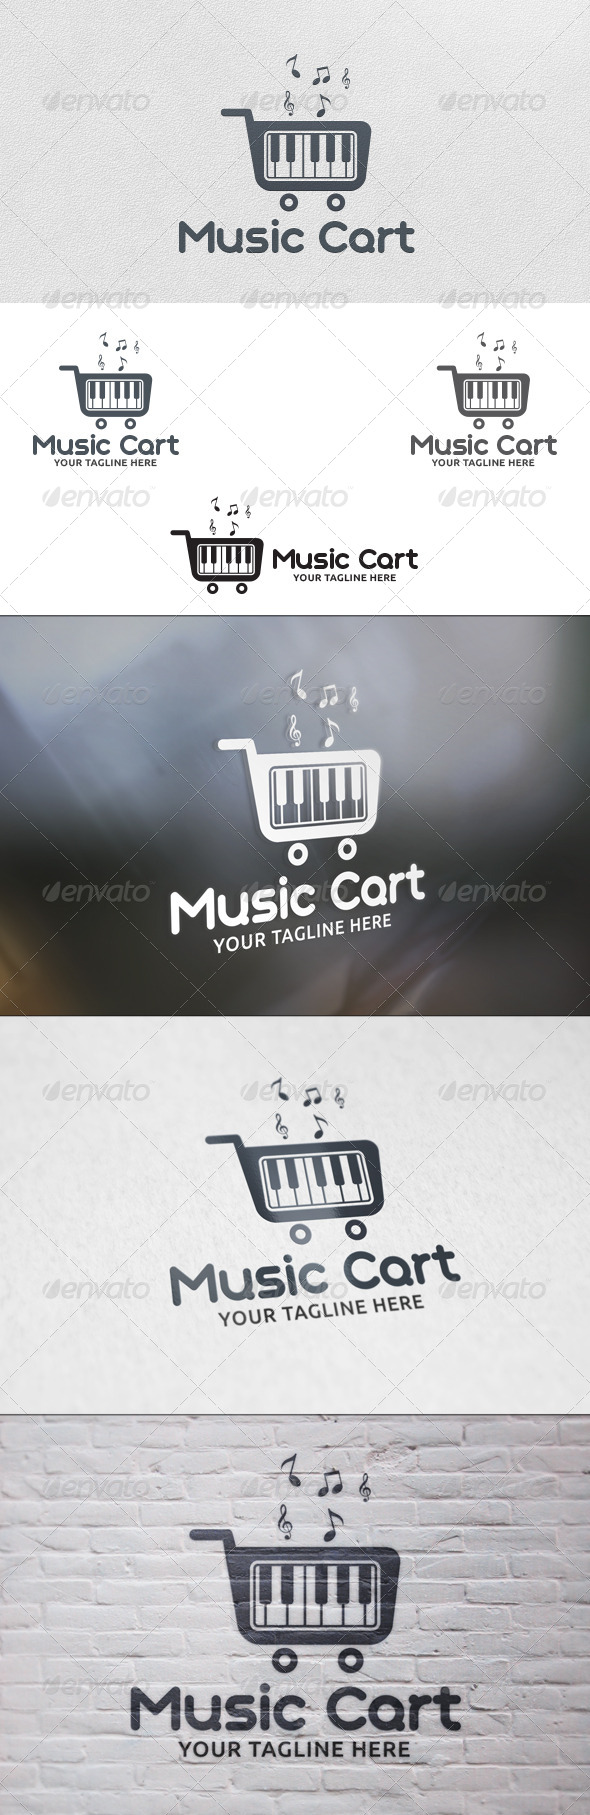 Music Cart - Logo Template